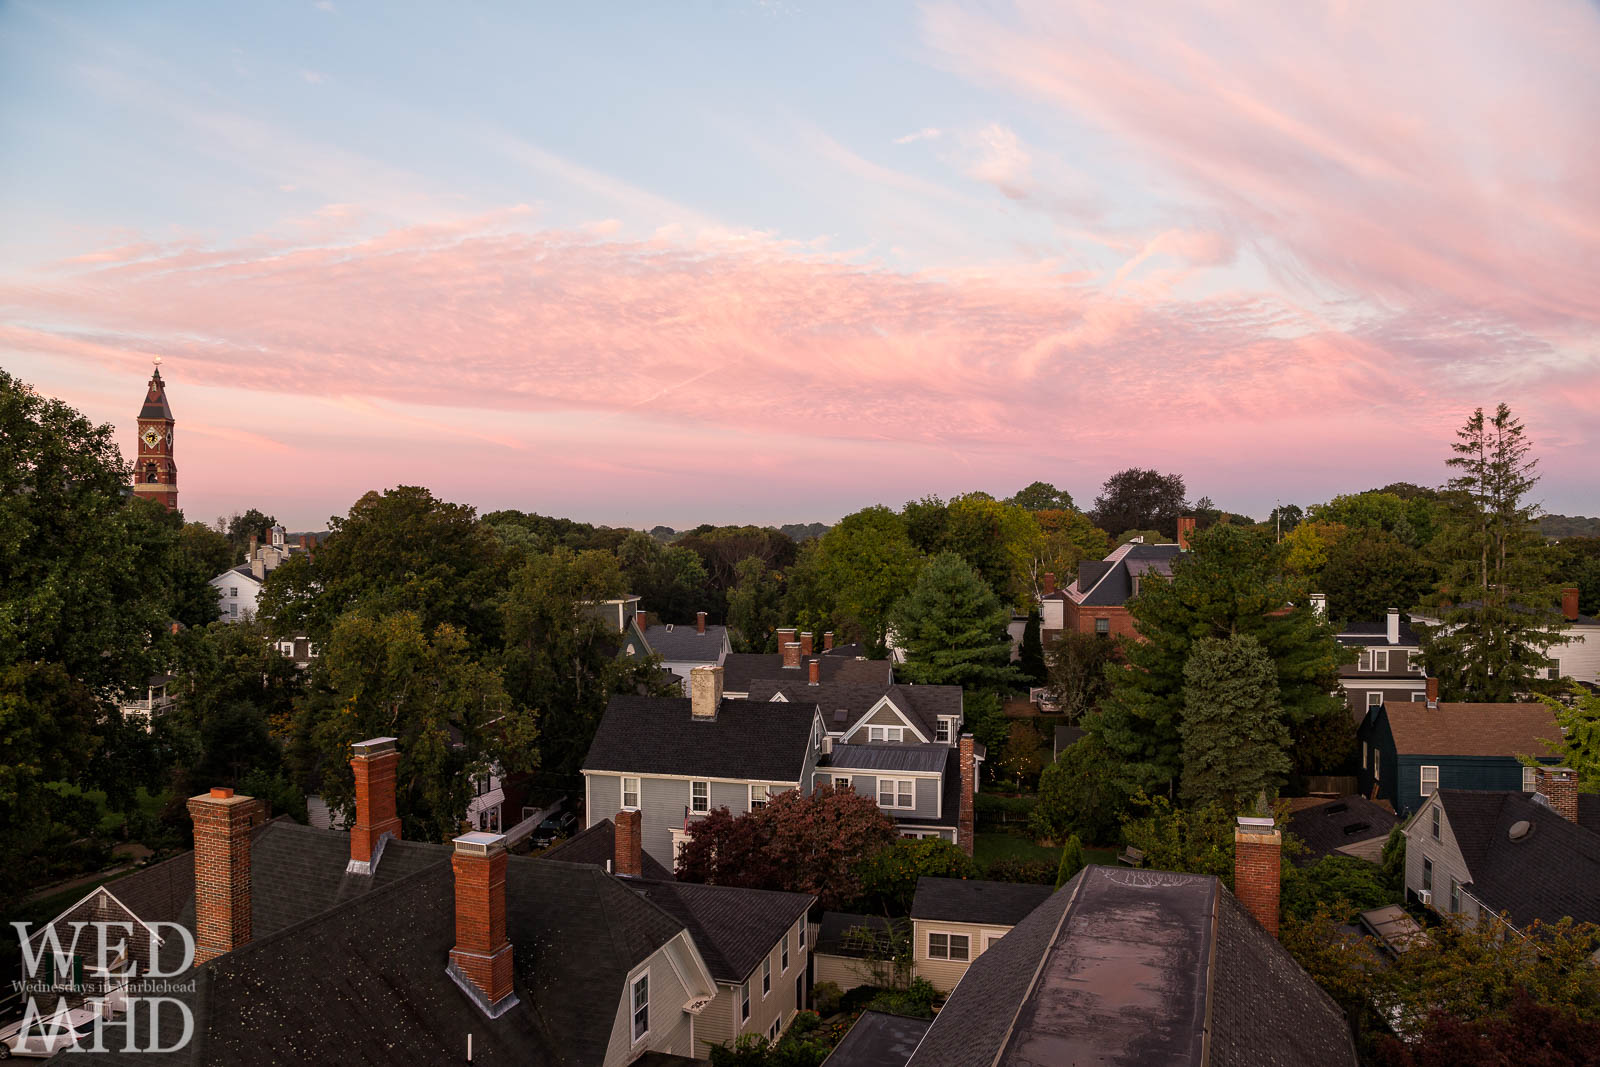 A view of Abbot and the rooftops from atop St. Michael's steeple at dawn in early October